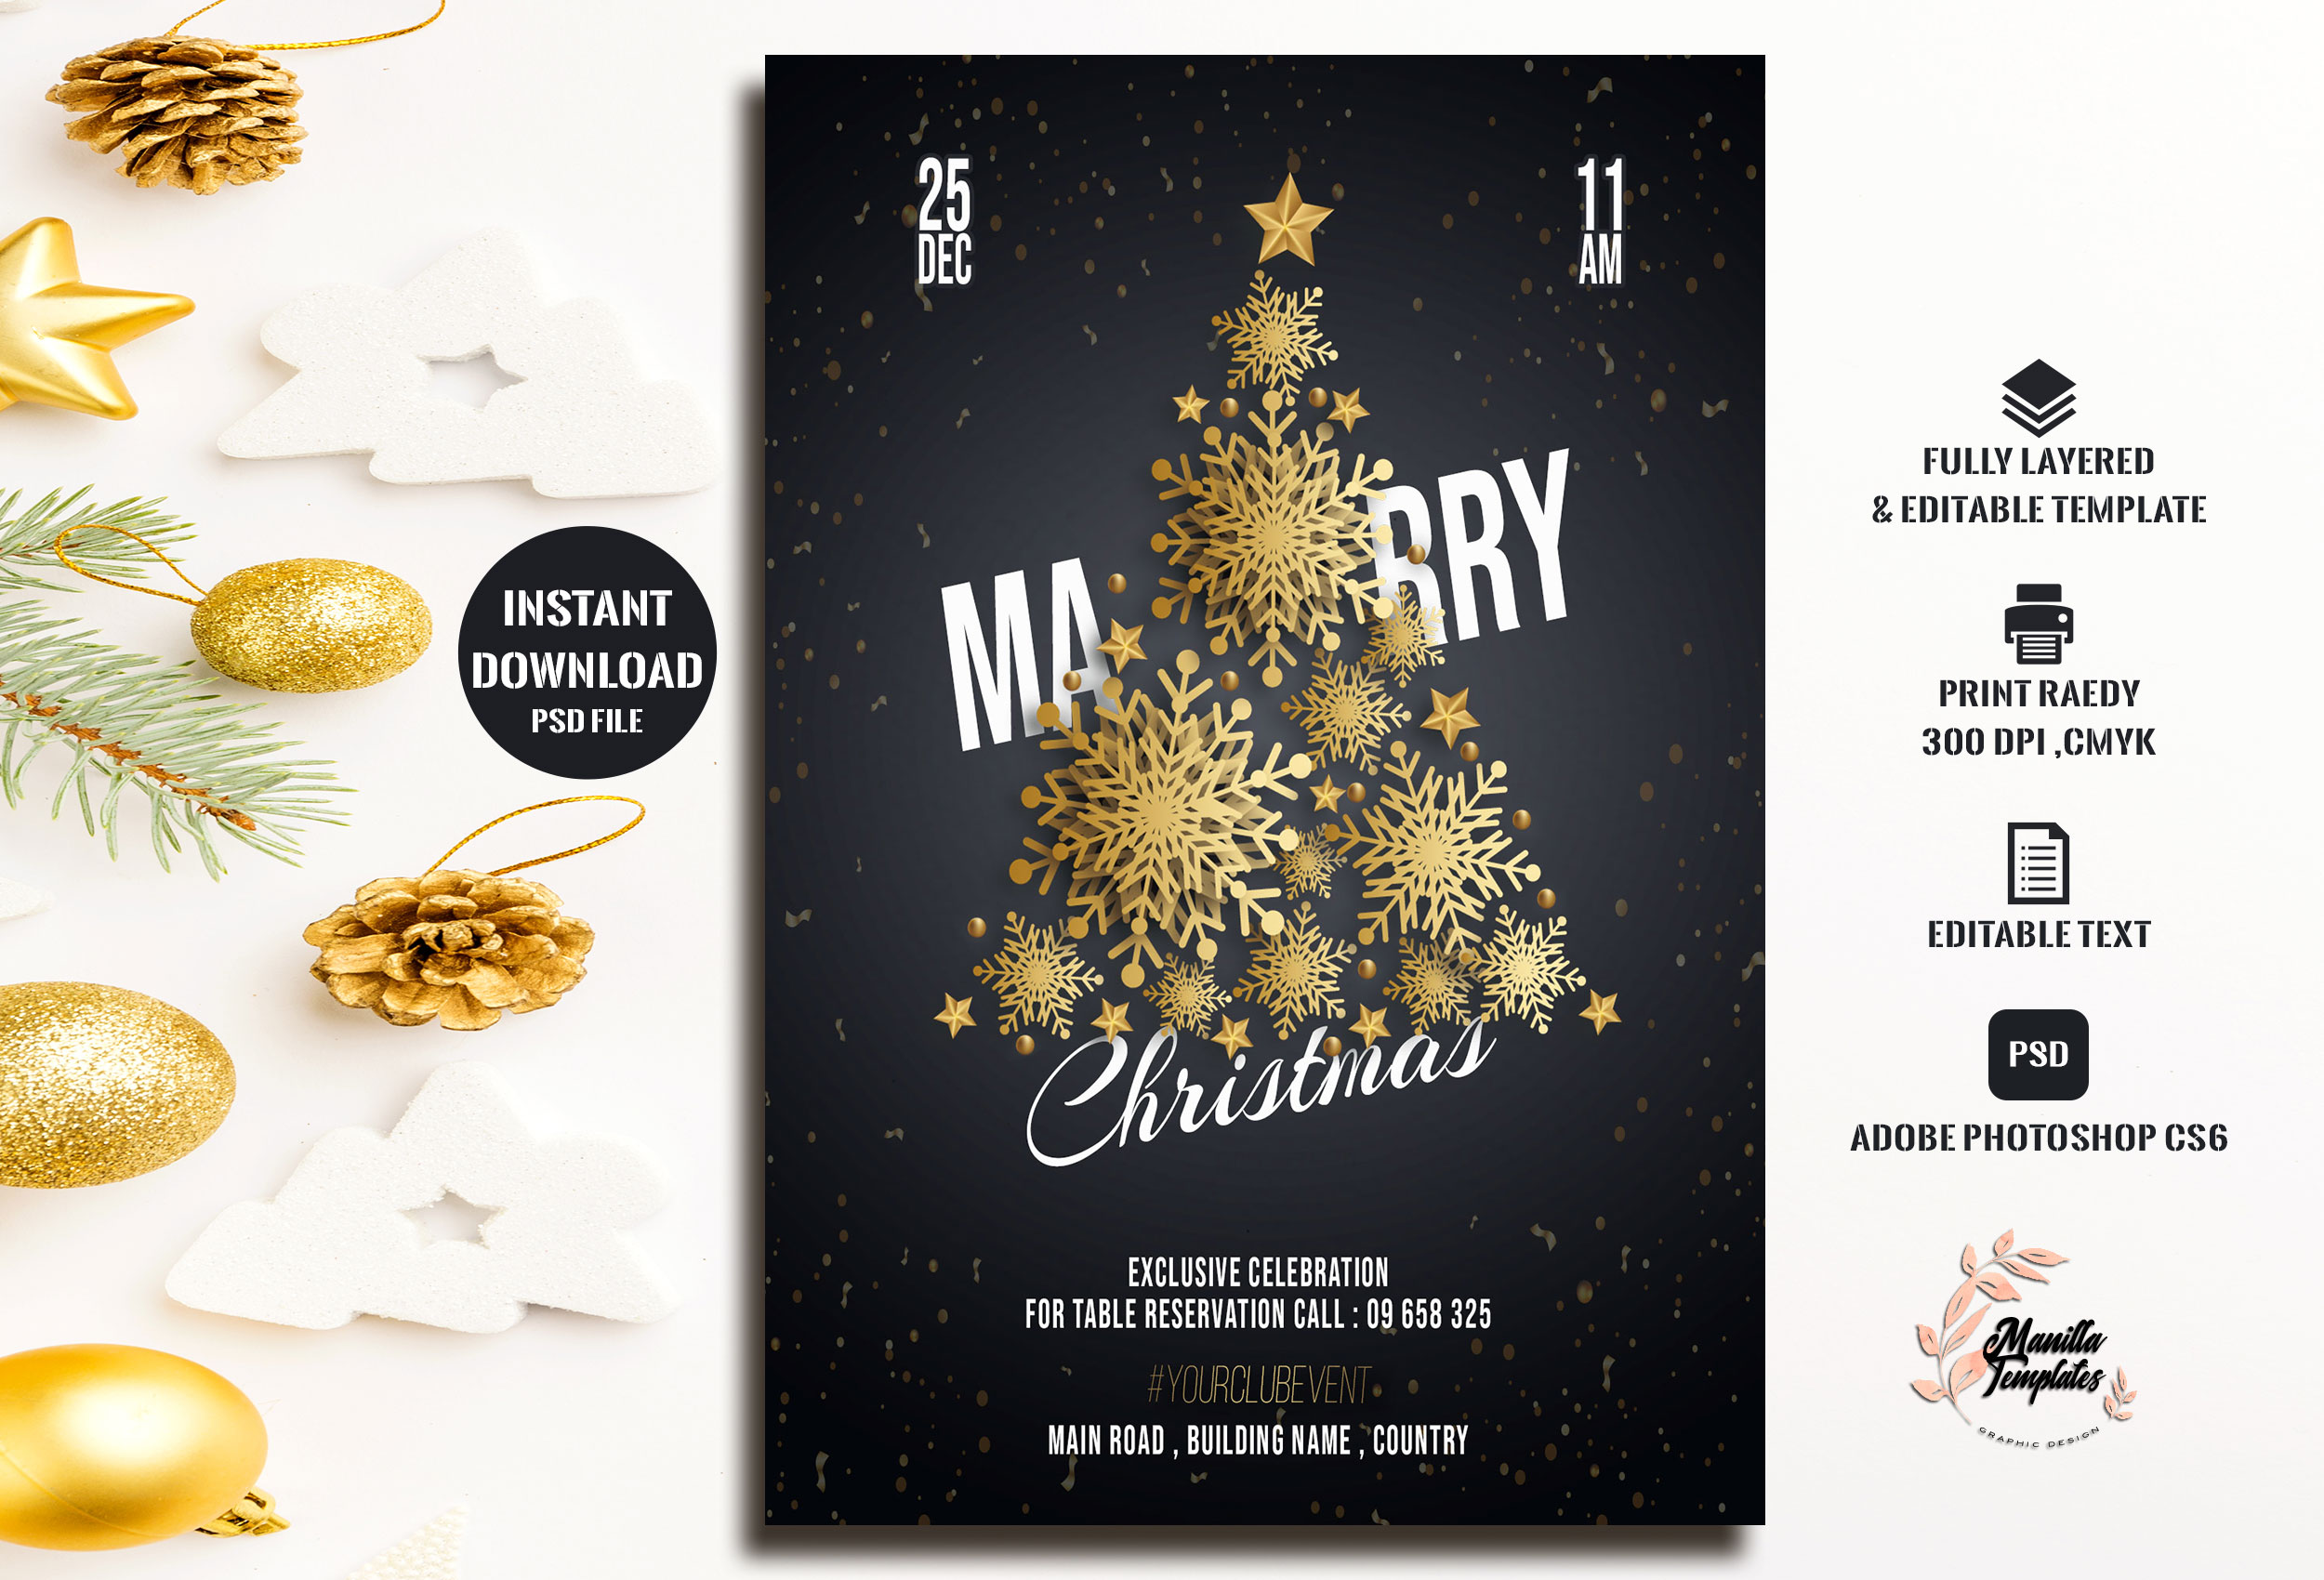 Download Free Marry Christmas Invitation Grafico Por Manilla Templates for Cricut Explore, Silhouette and other cutting machines.